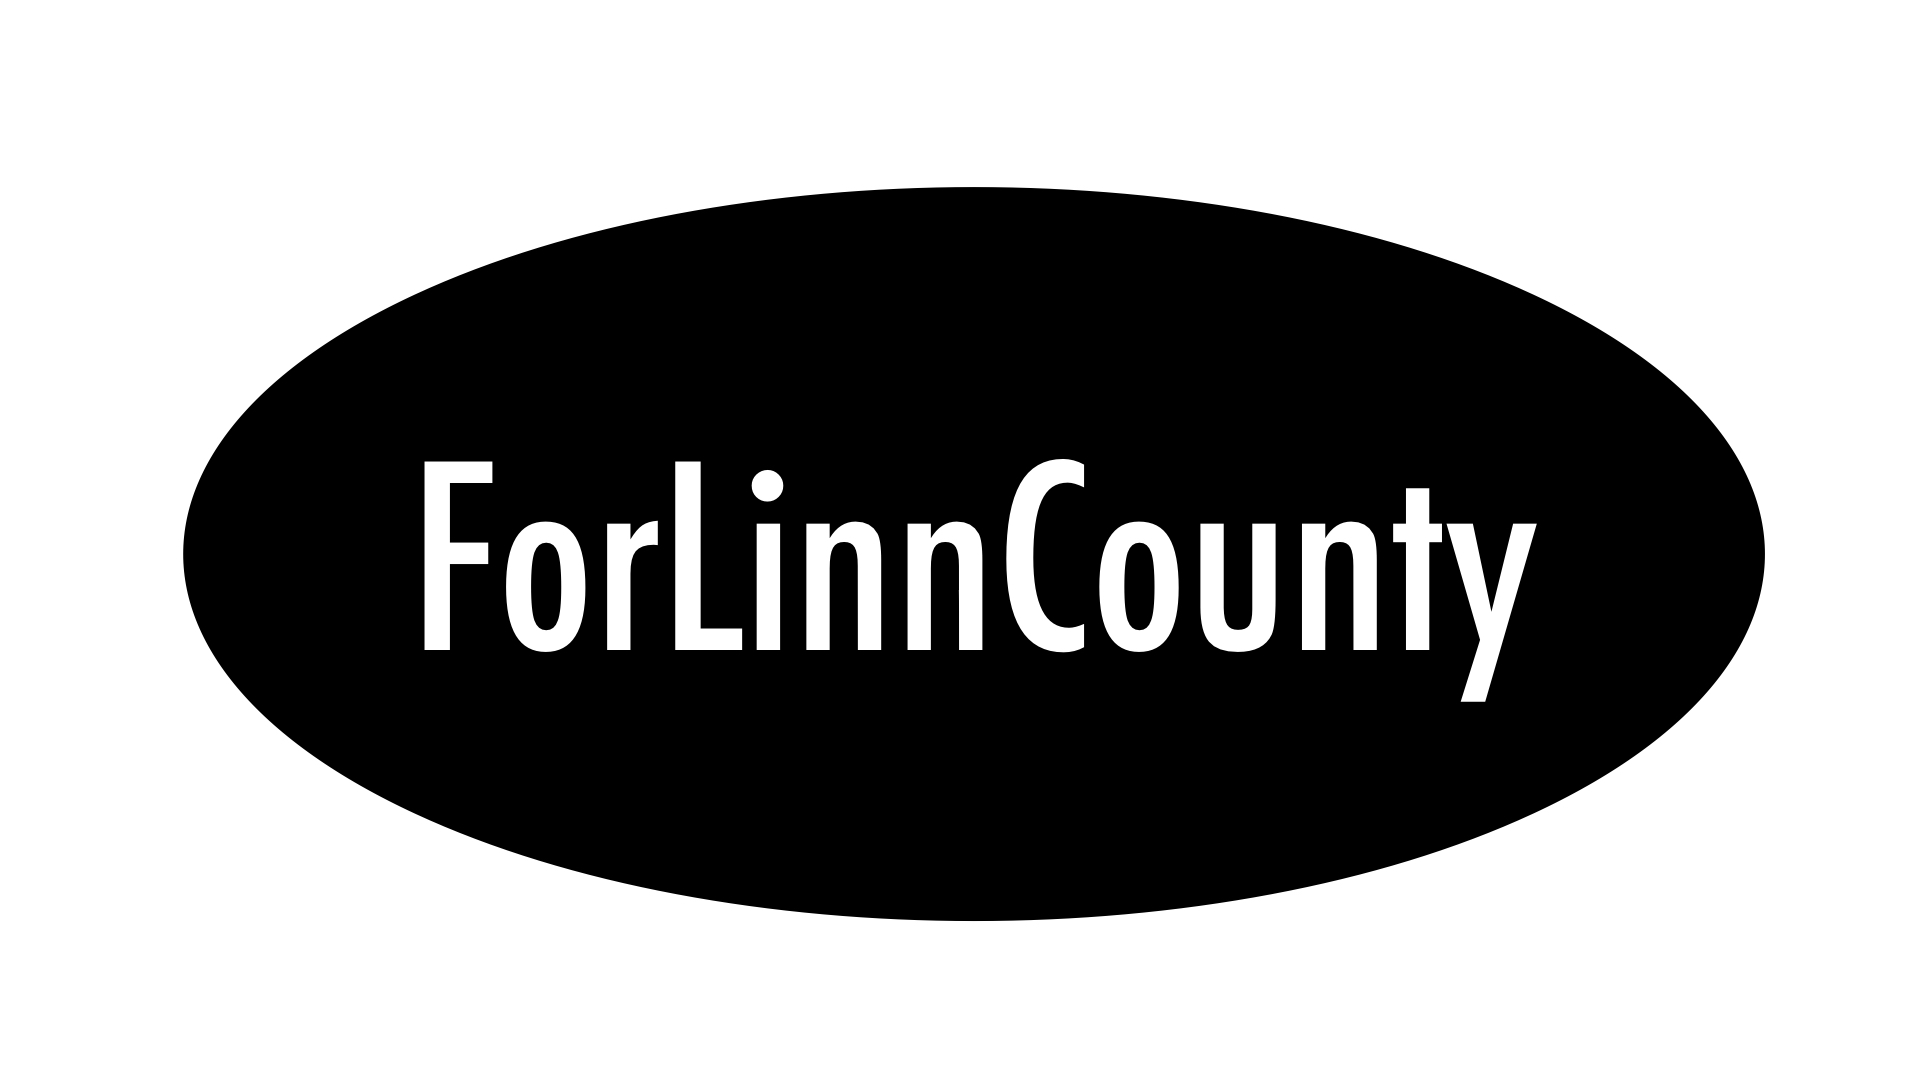 ForLinnCounty.001.jpeg